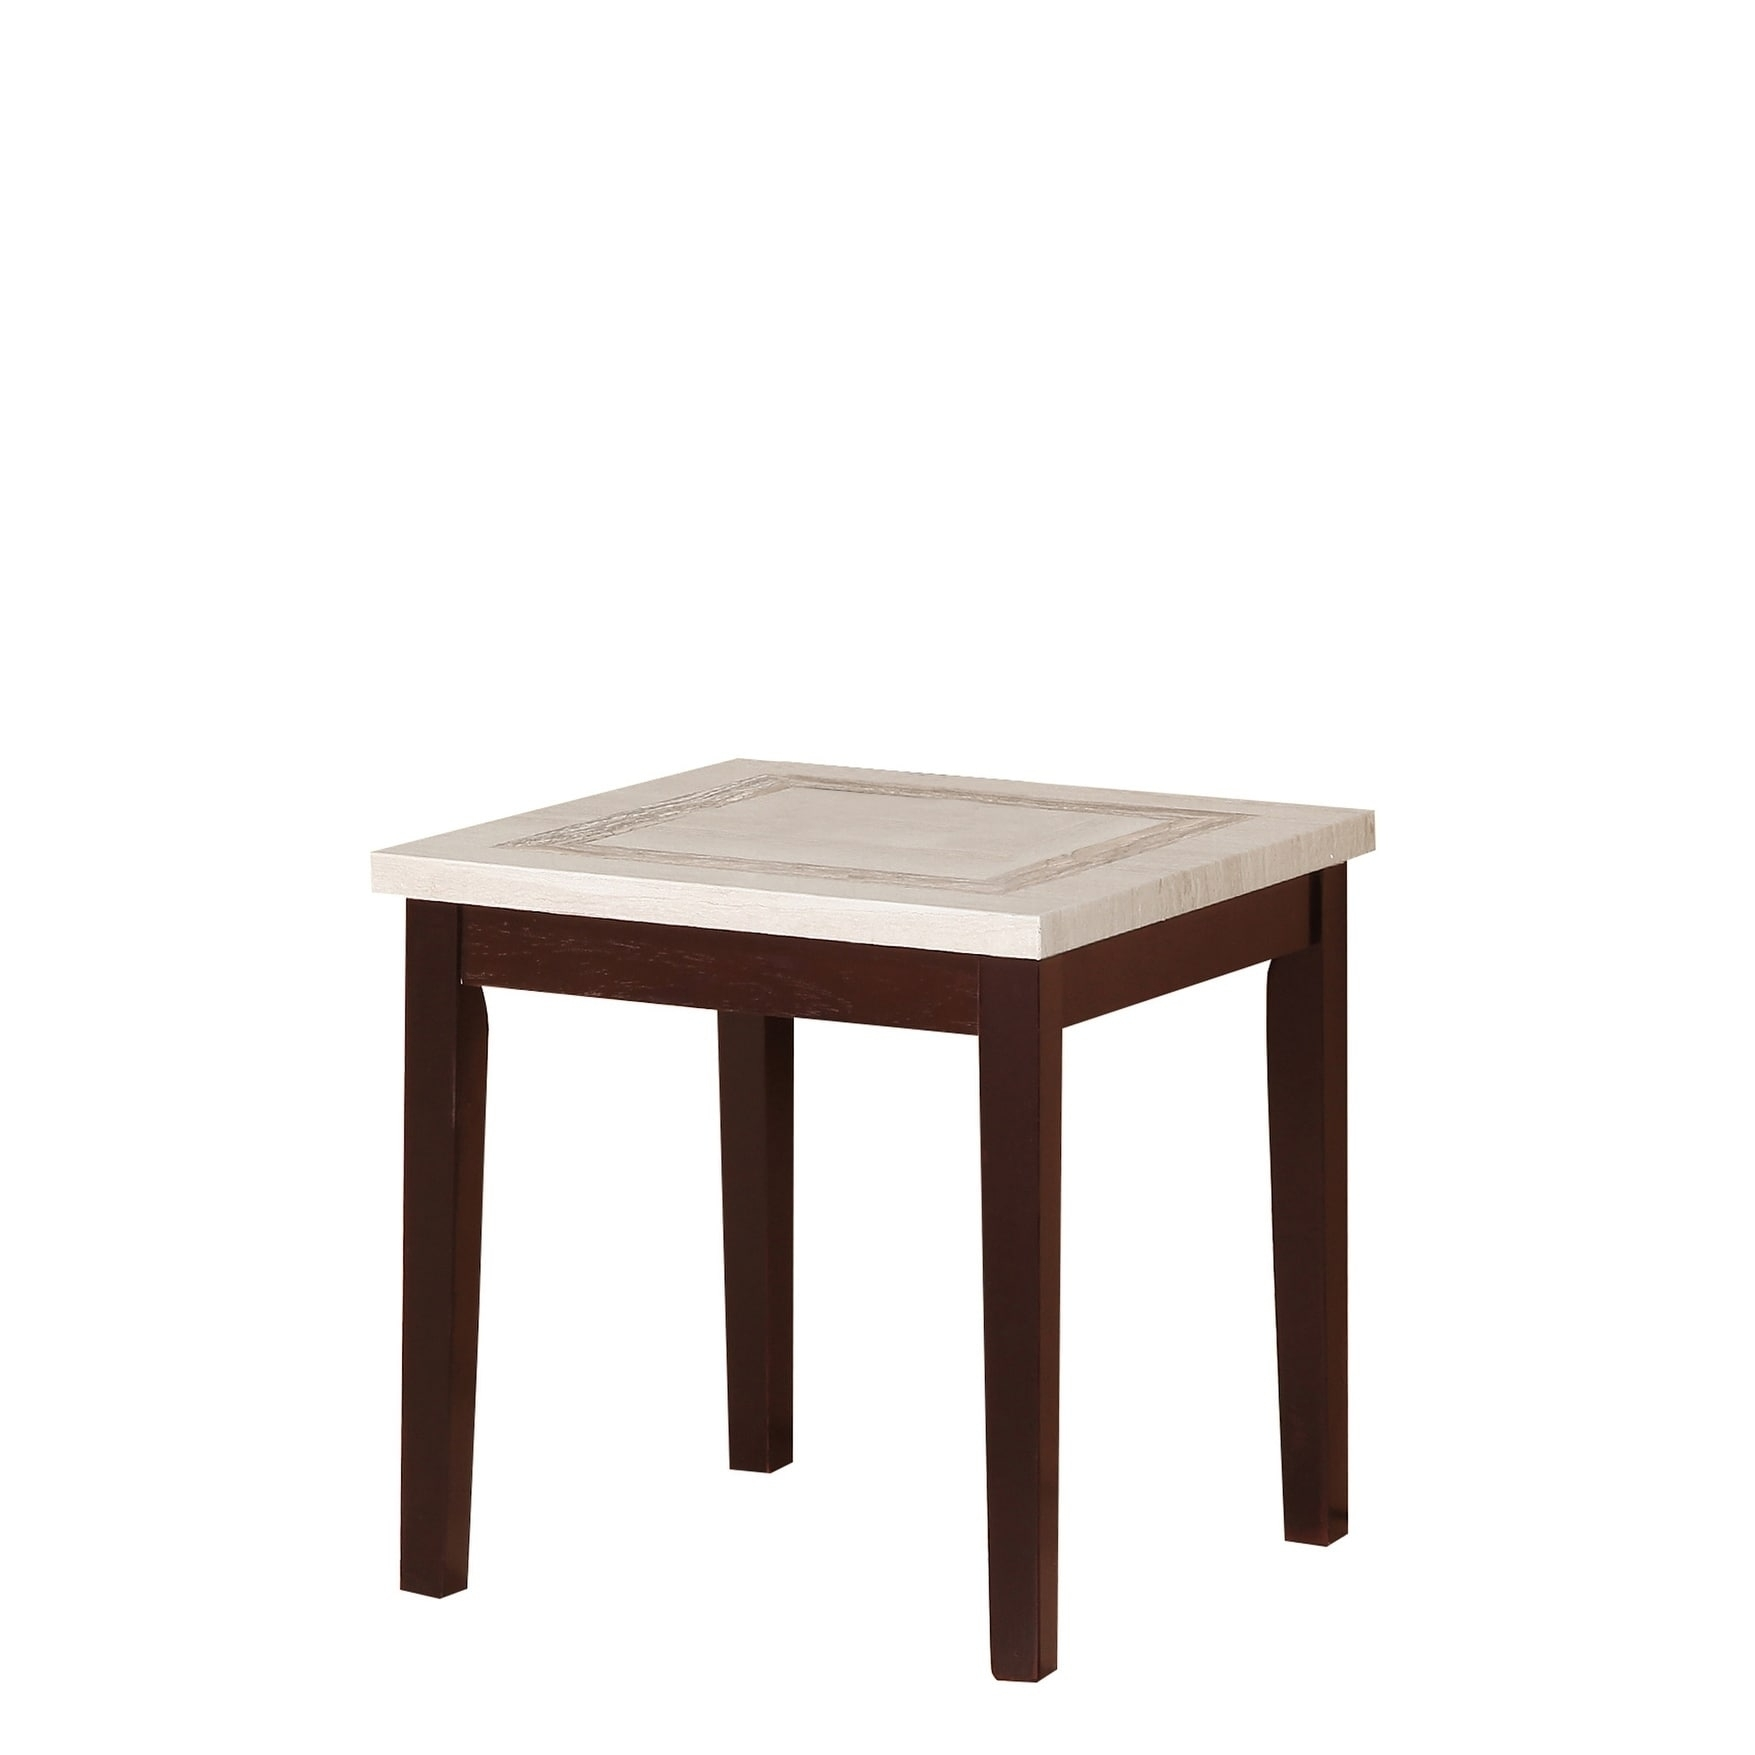 Shop 29.5 Inch Ivory Faux Marbelized Granite End Table - Free inside Element Ivory Rectangular Coffee Tables (Image 23 of 30)